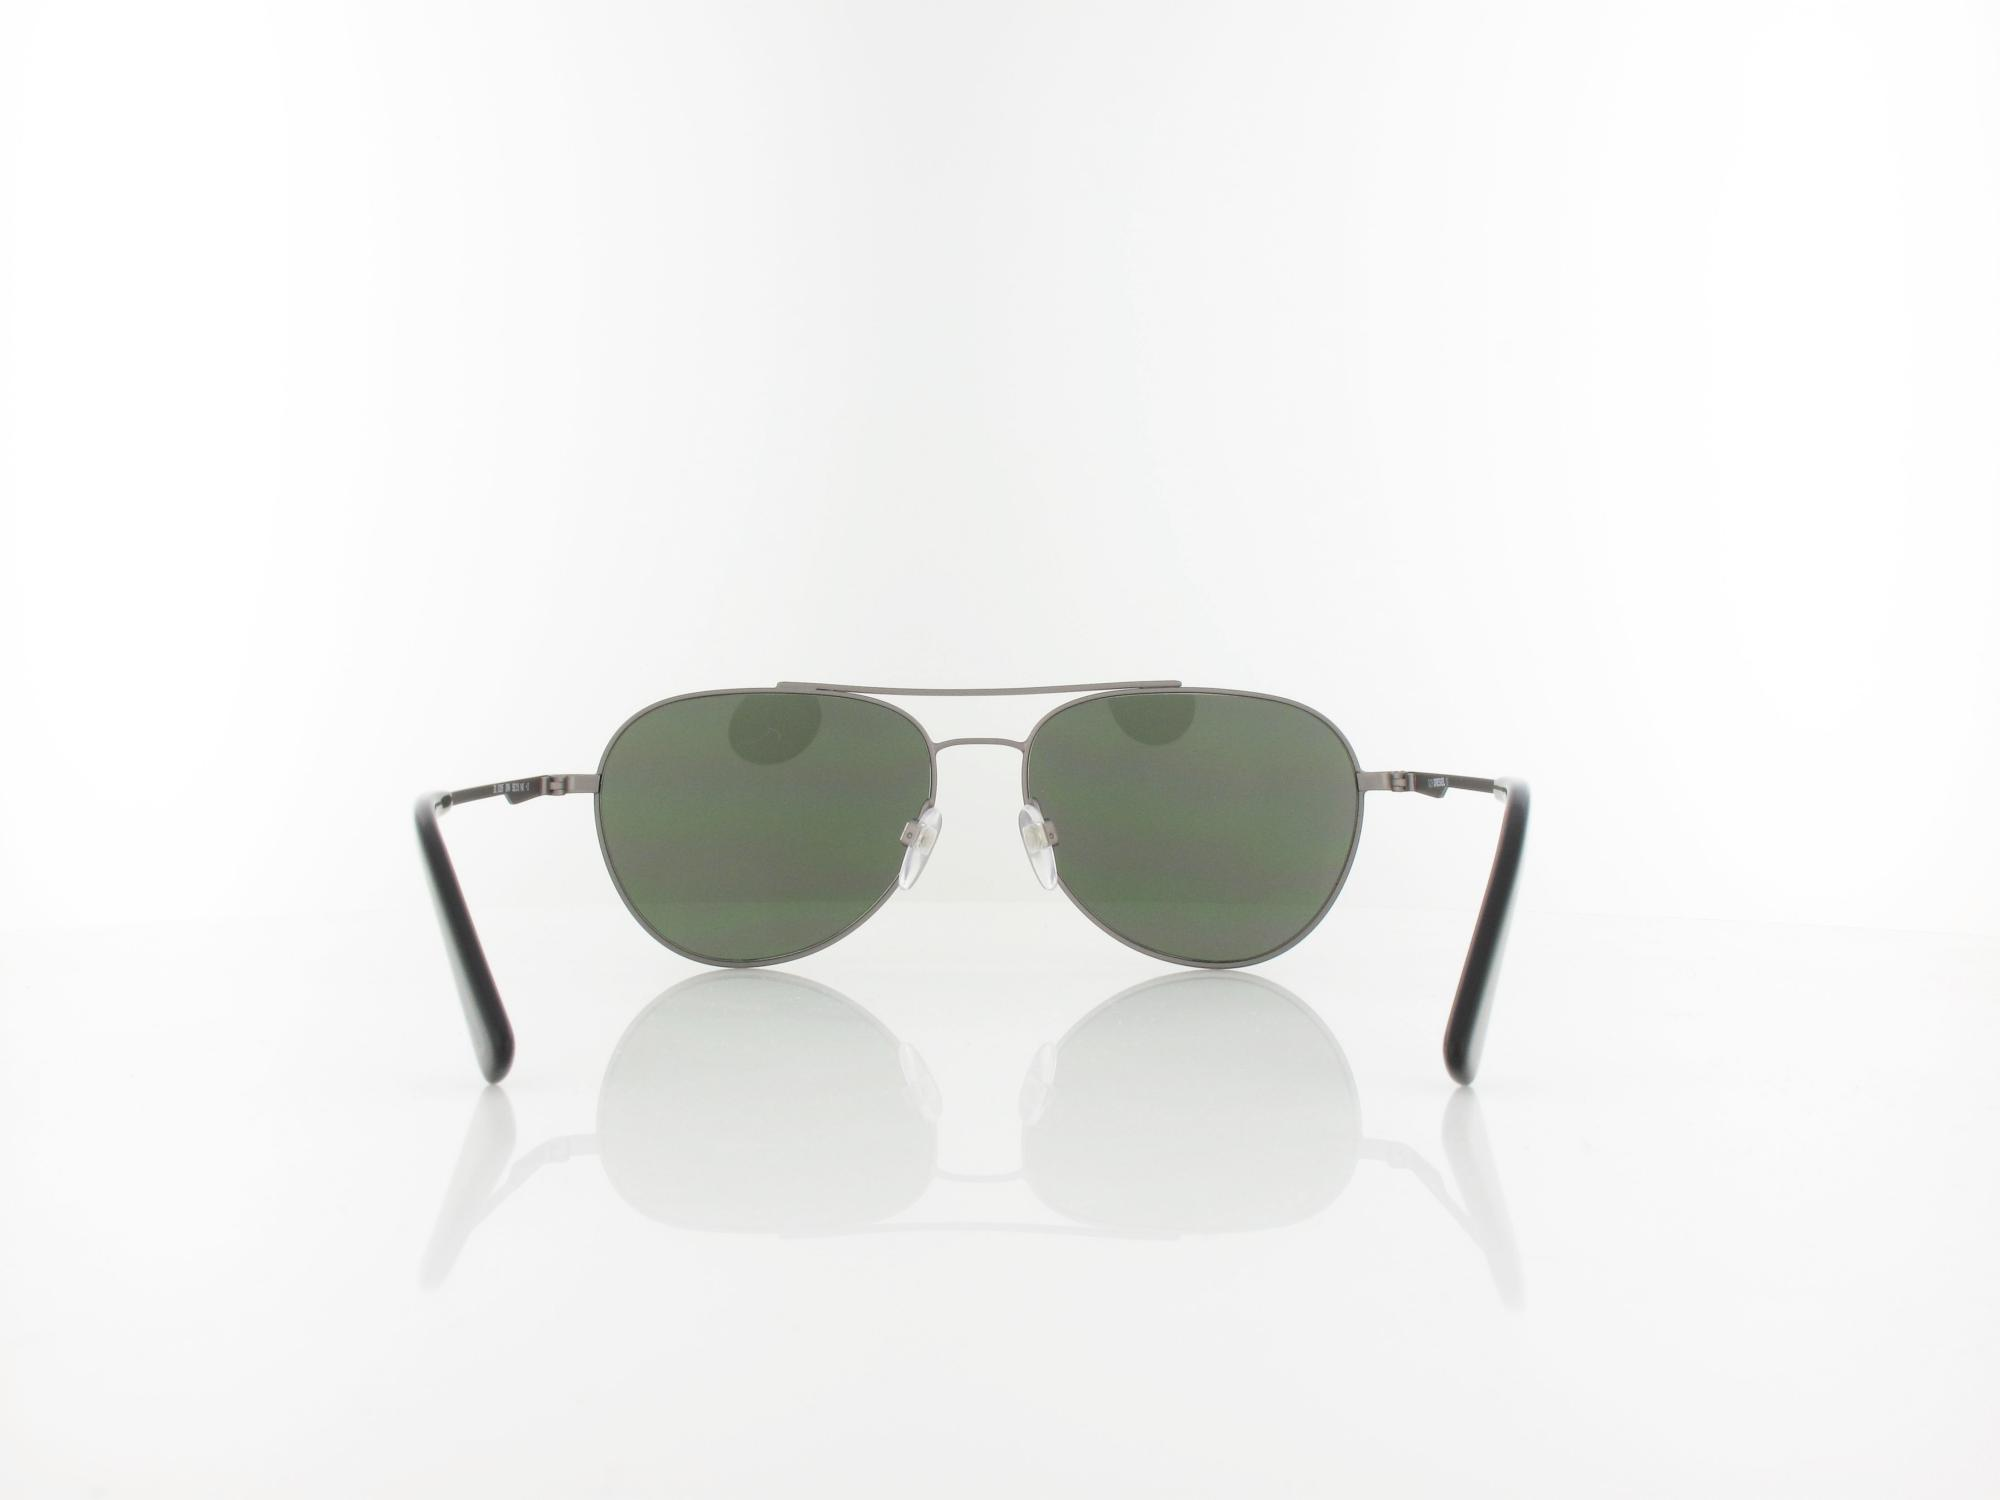 Diesel | DL0285 09N 56 | matte anthracite / green